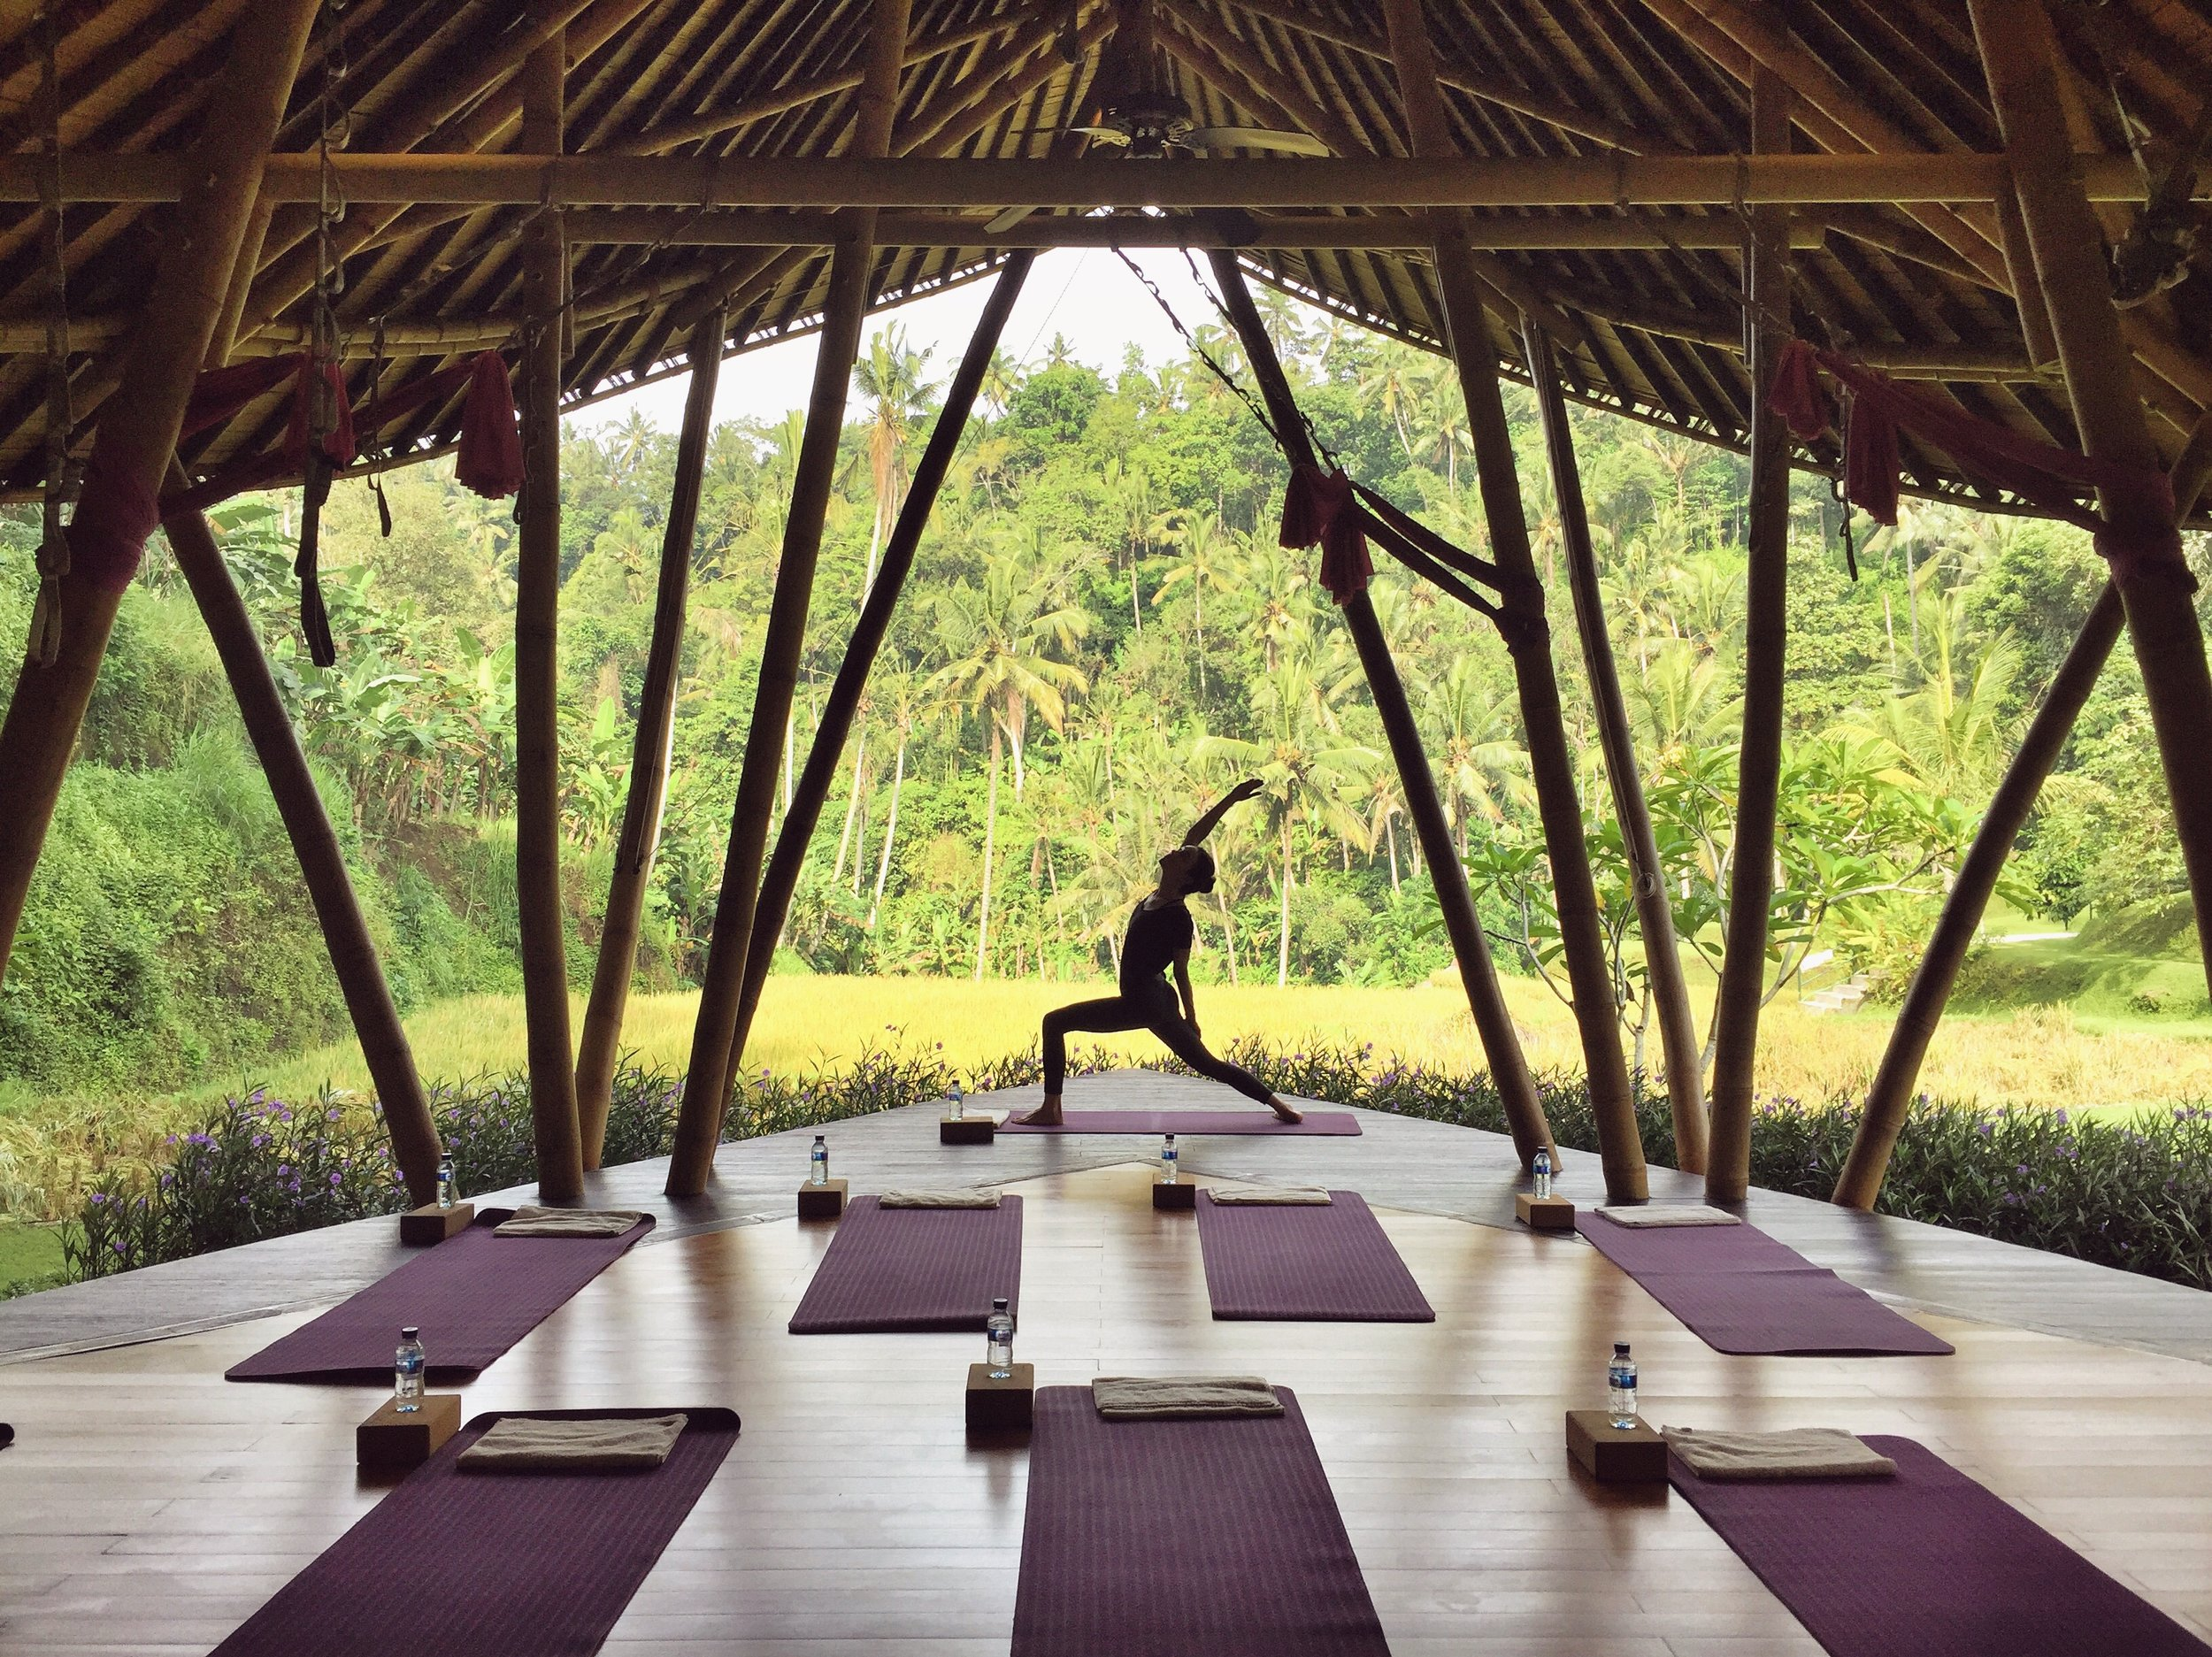 Yoga in Bali | EAT.PRAY.MOVE Yoga | Bali, Indonesia